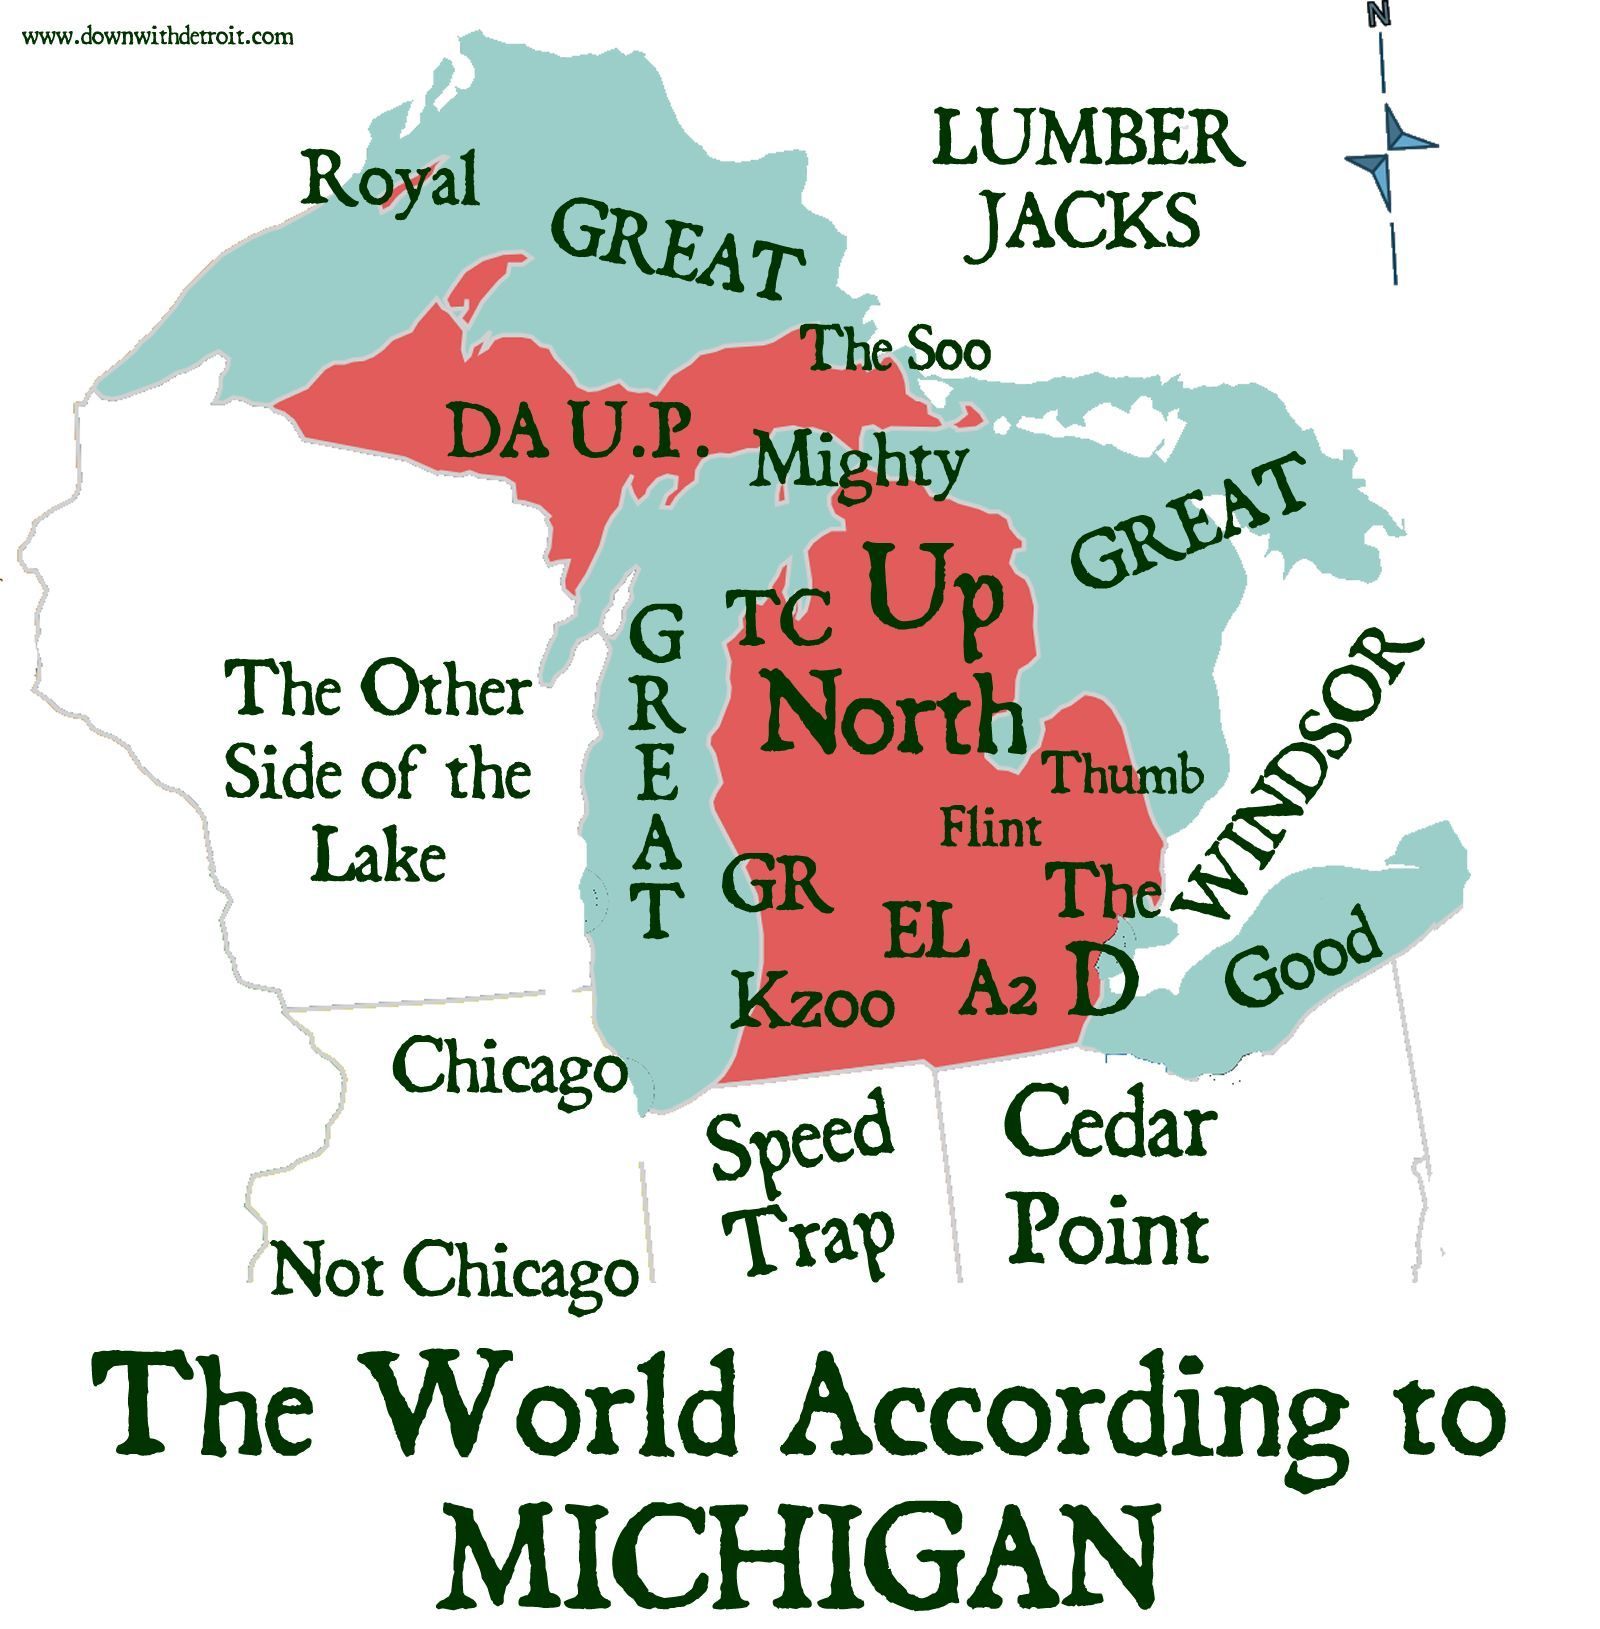 The world according to Michigan... yup sounds about right.